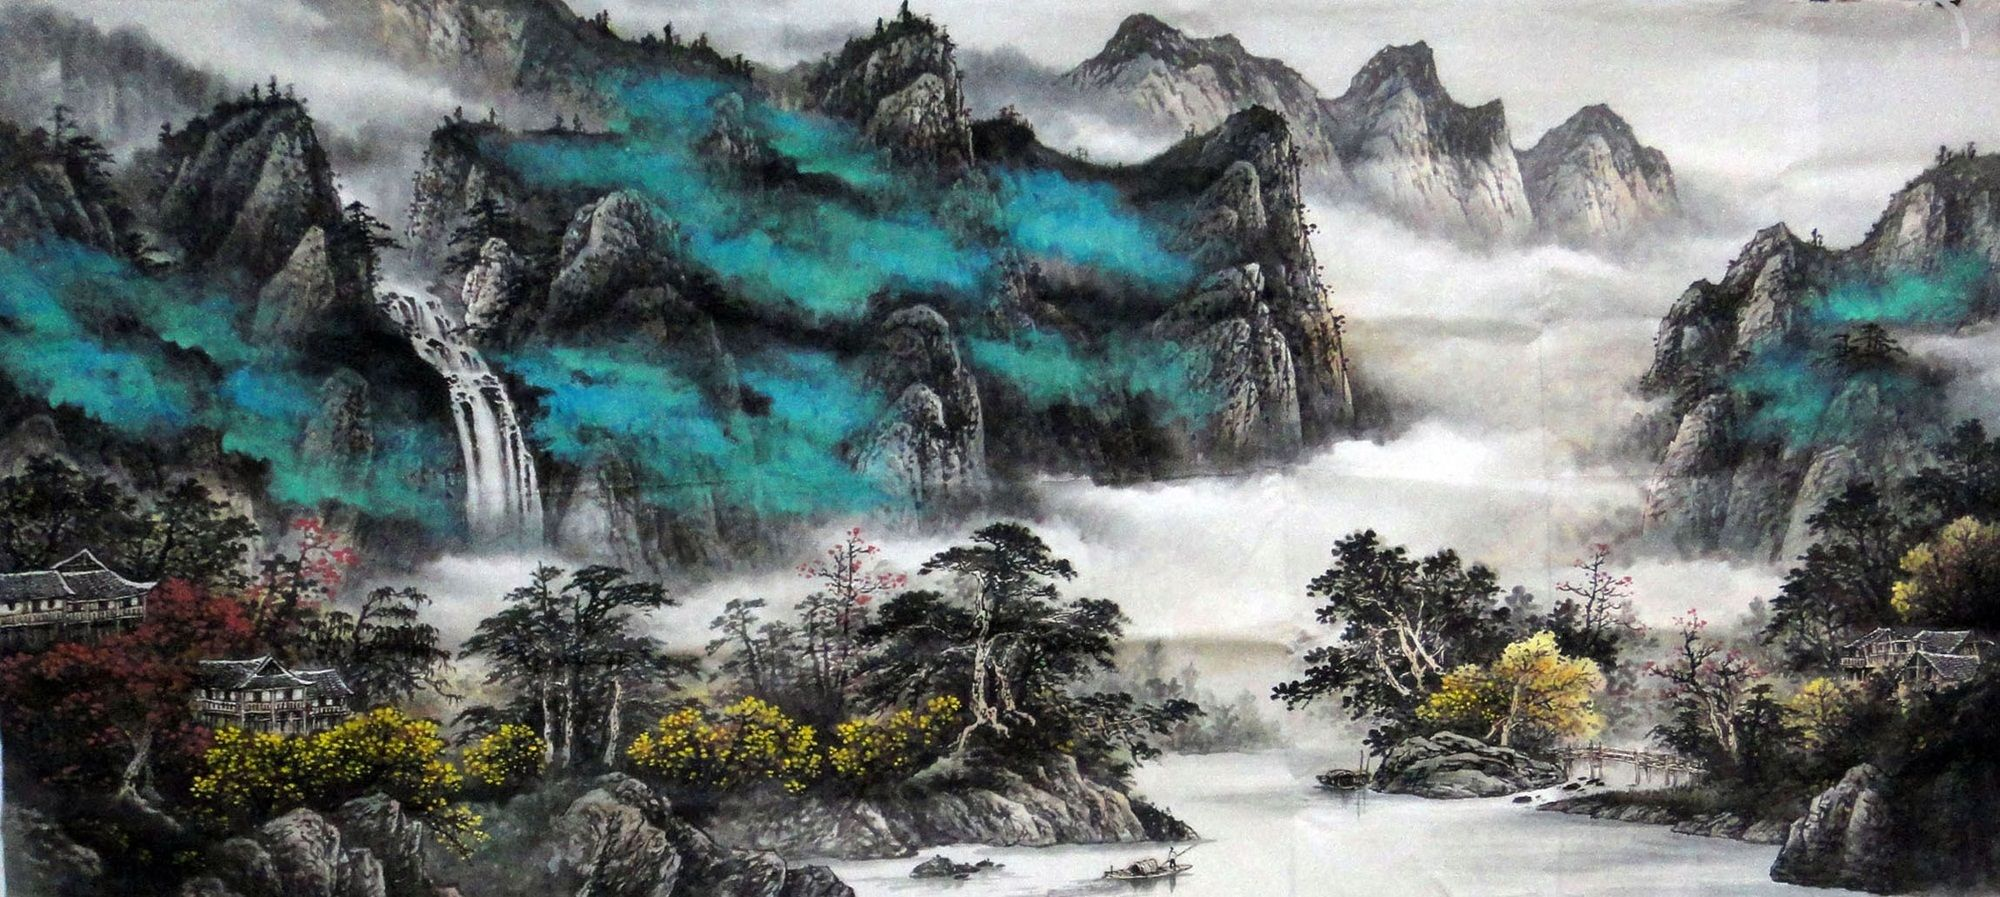 Watercolor art history brush - Rural River Mountain Landscape Abstract Art Chinese Watercolor Brush Painting 80cm 180cm Chinese Wall